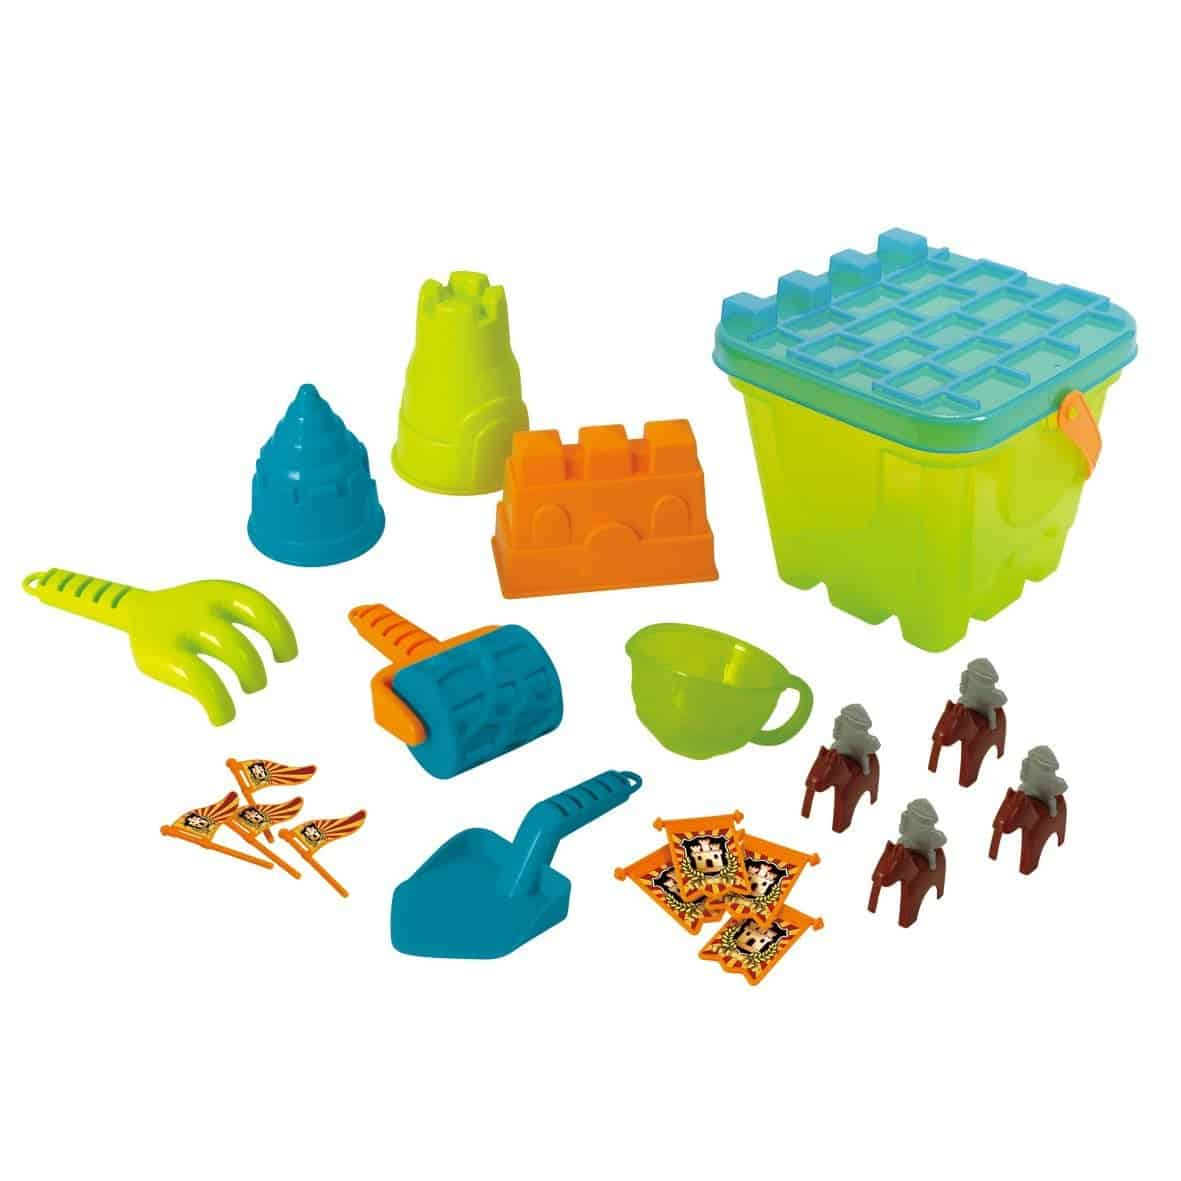 10+ Best Games and Toys for a Fun Day at the Beach: Deluxe Sand Castle Playset| www.thepinningmama.com